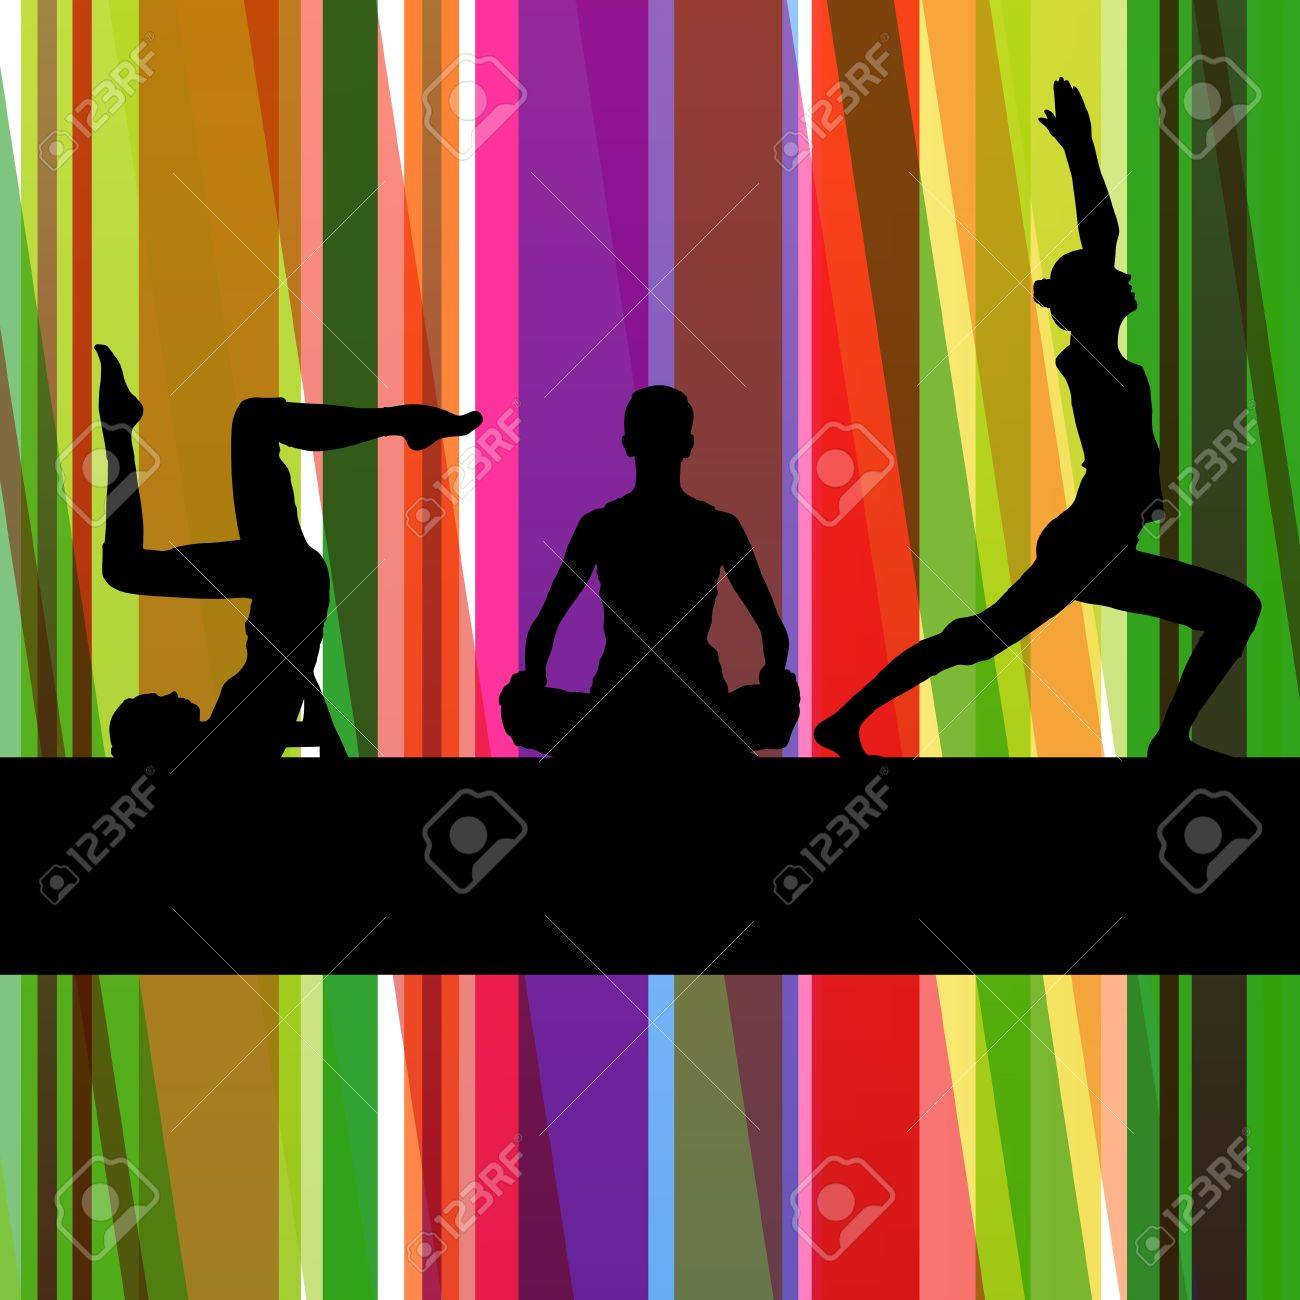 Women gymnastic exercises fitness illustration colorful line background vector Stock Vector - 17871253